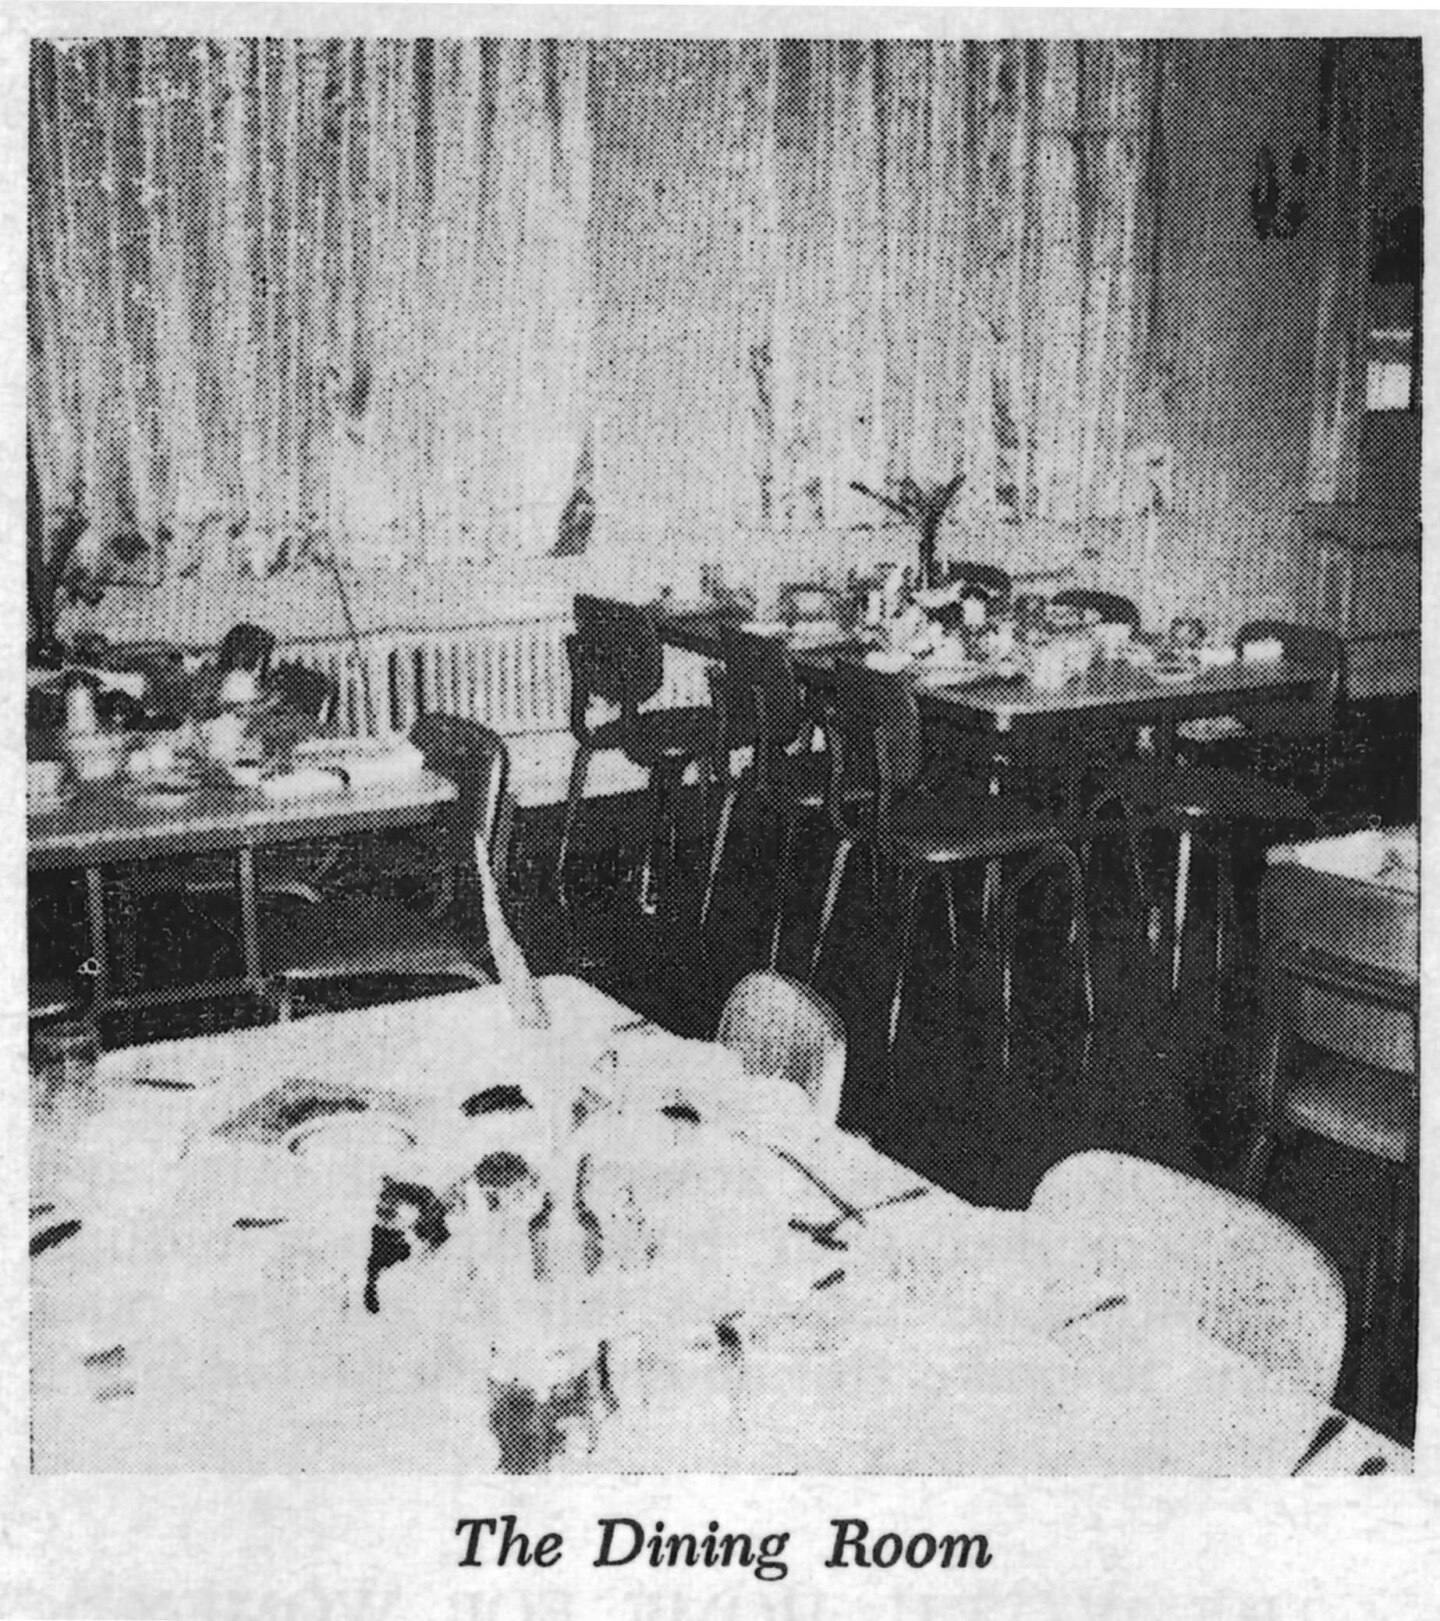 The dining room at the Woman's Christian Temperance Union Home. There are three tables at the table filled with silverware and plates. There are two big windows on the wall with curtains.